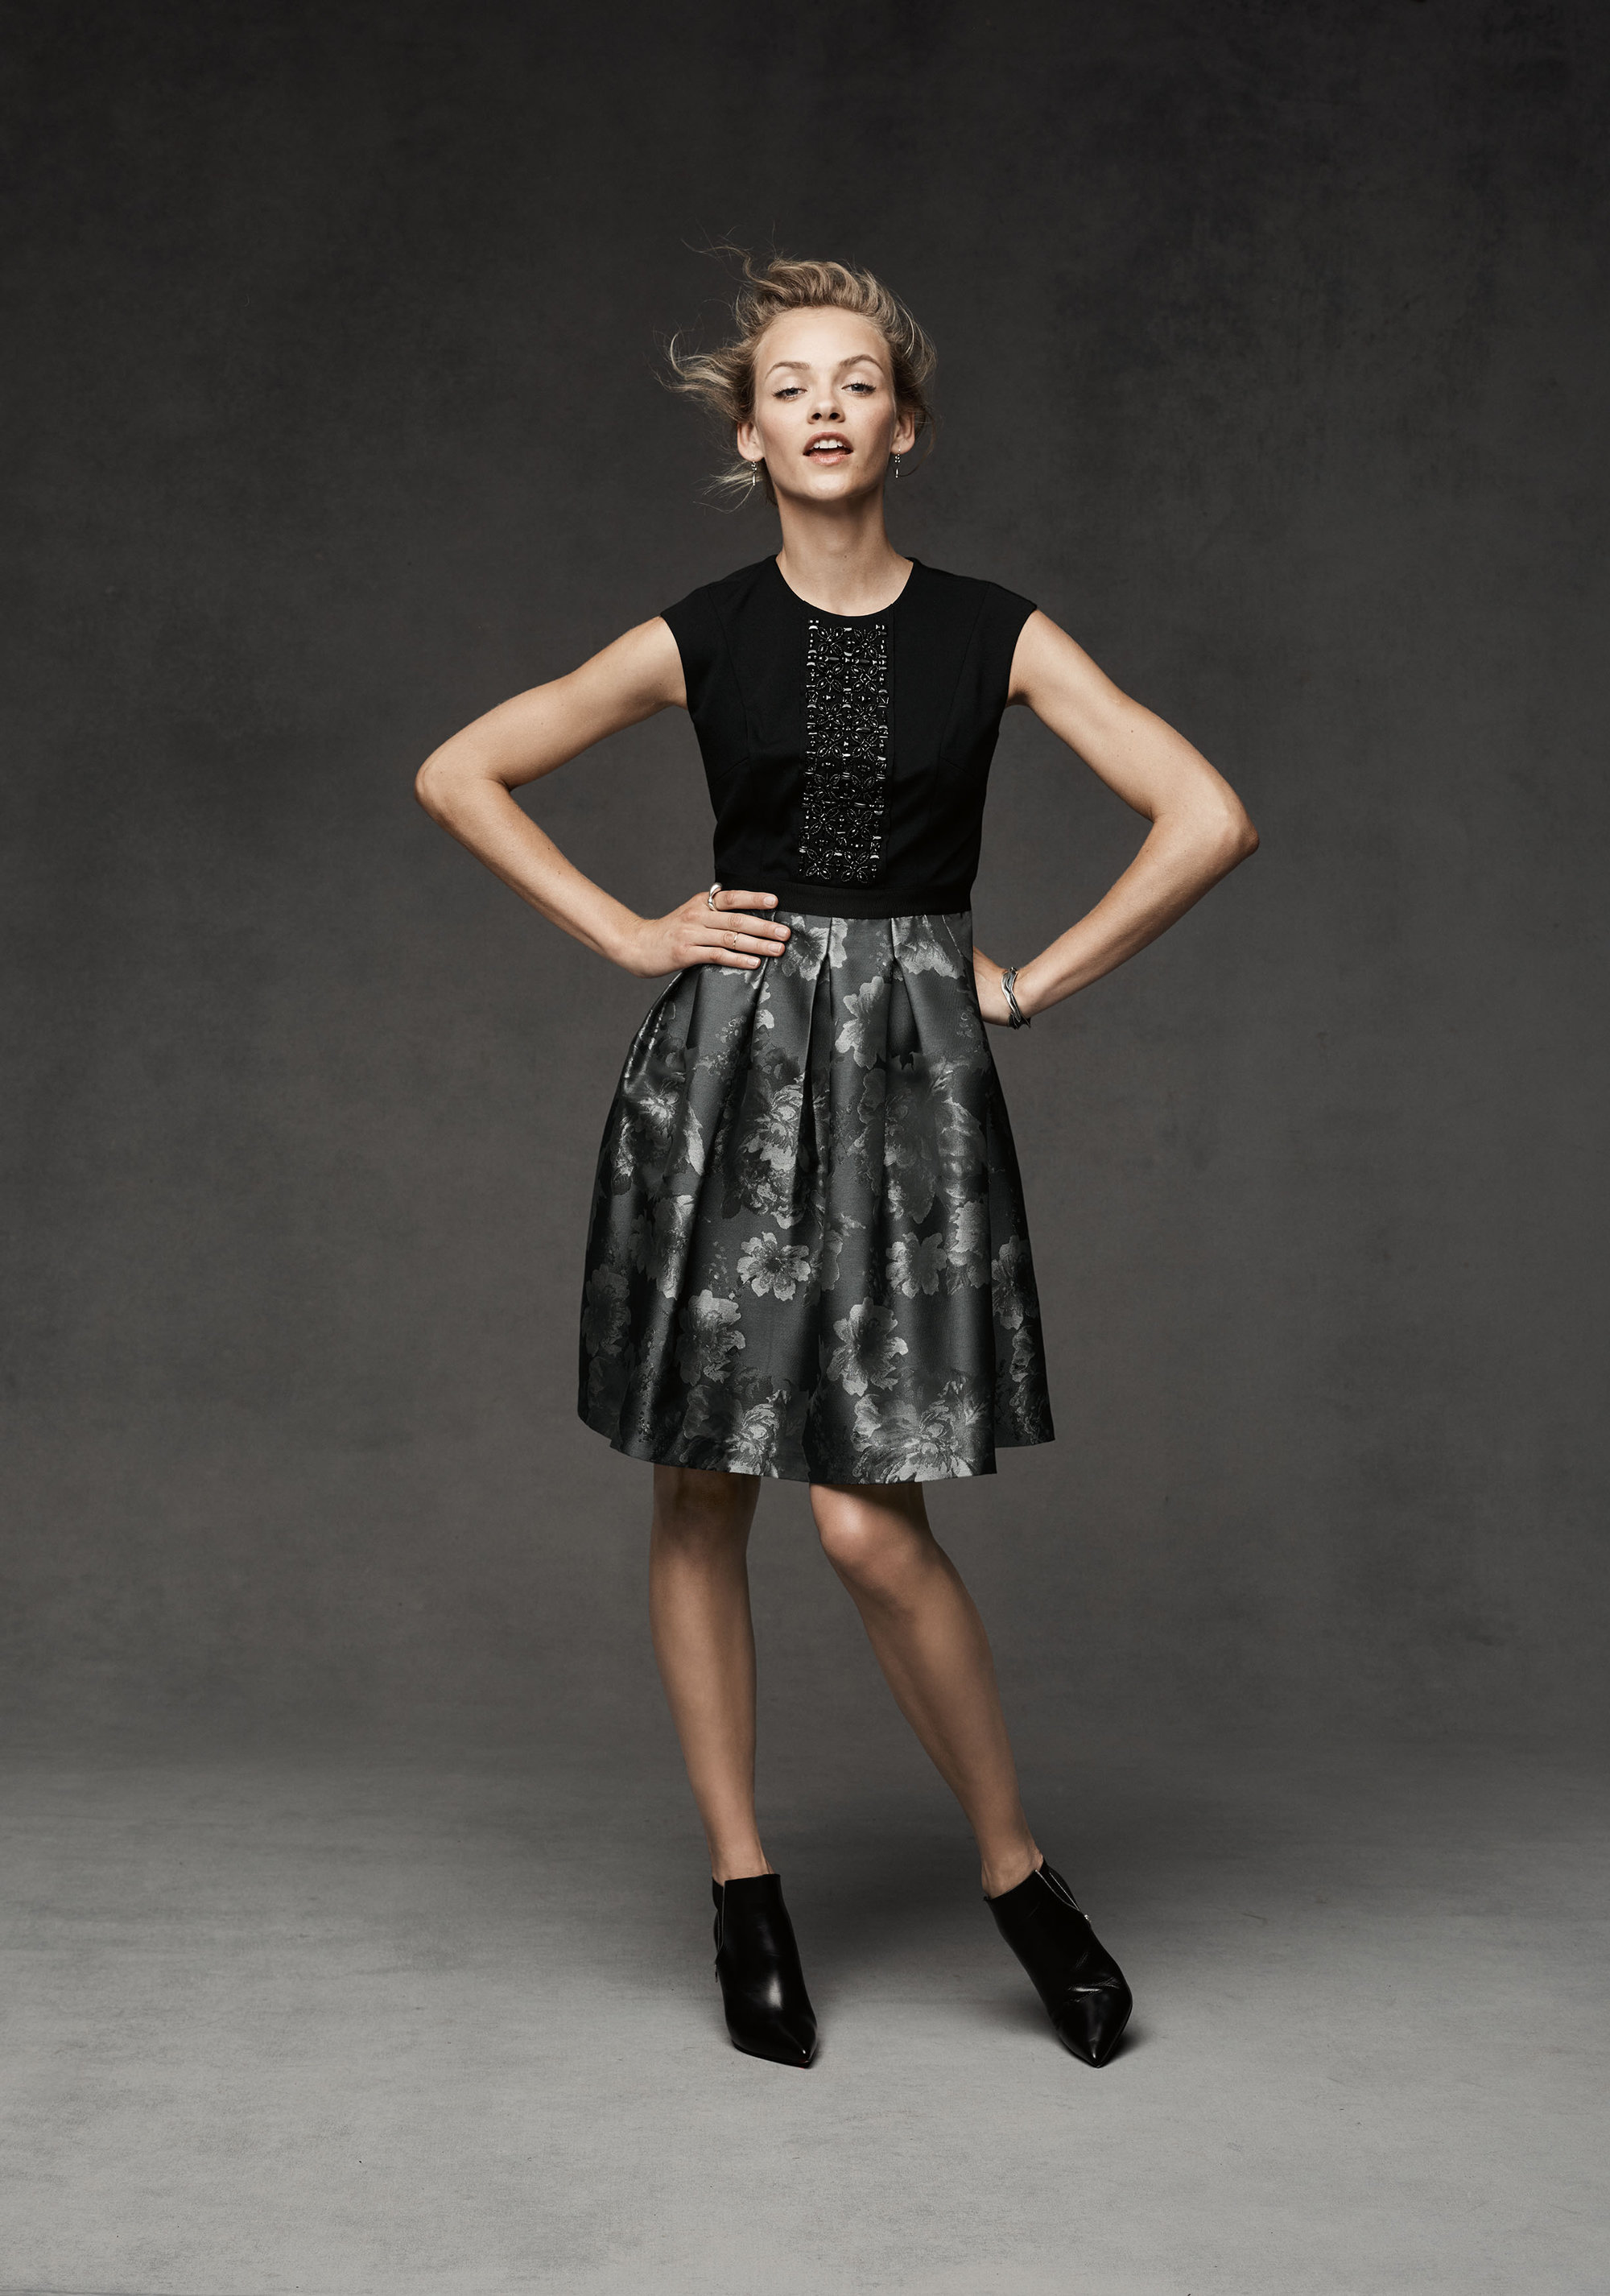 Dressbarn's New Campaign - Embed 1